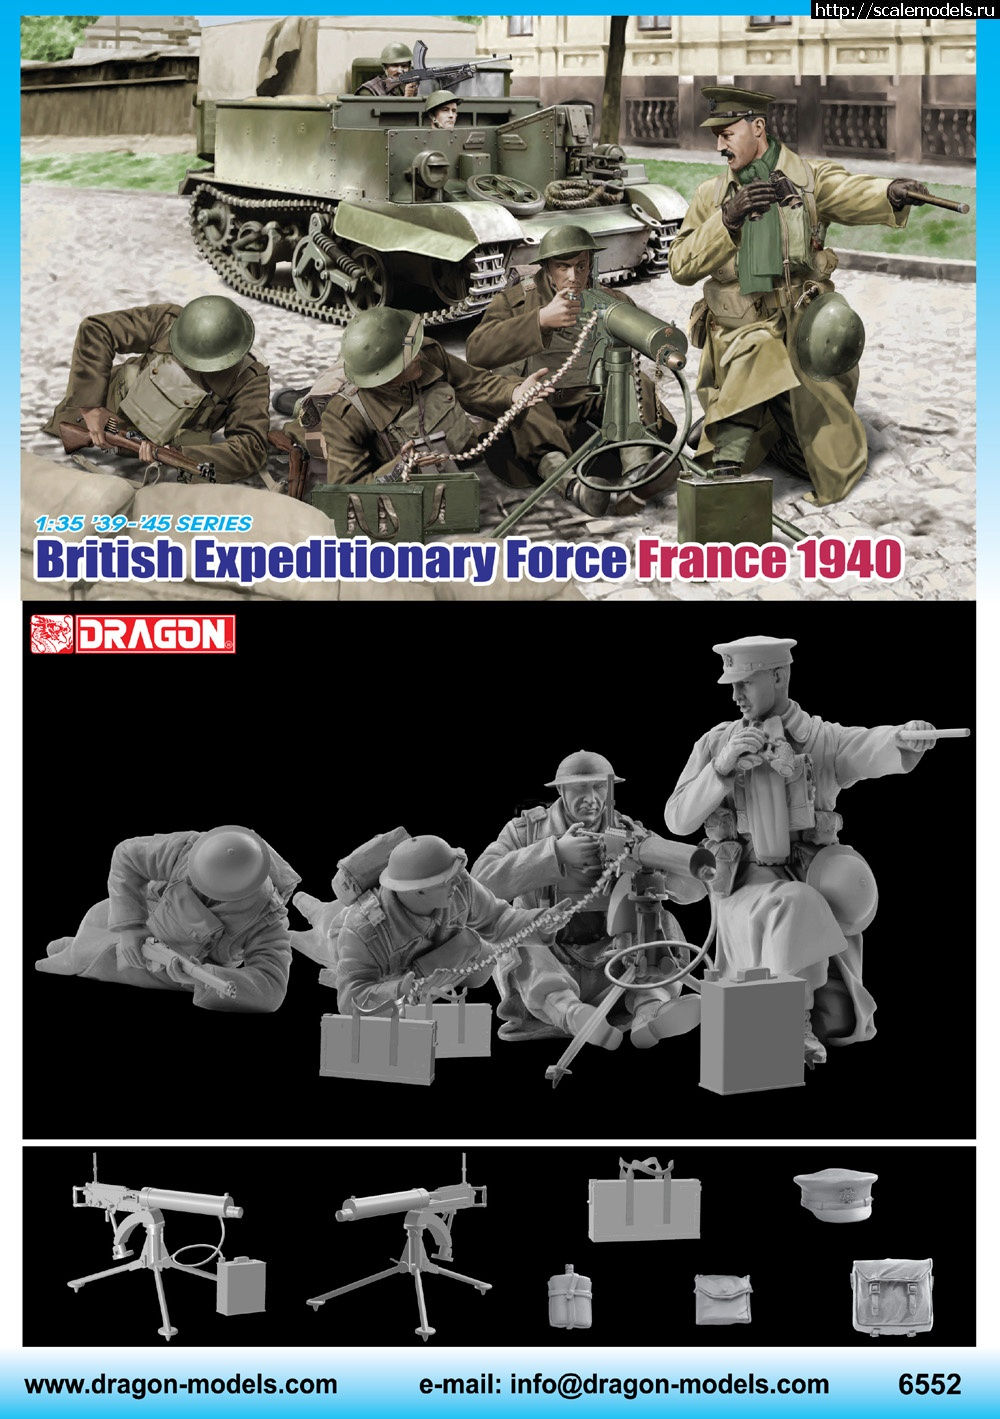 Новинка Dragon: 1/35 British Expeditionary Force, France 1940  Закрыть окно